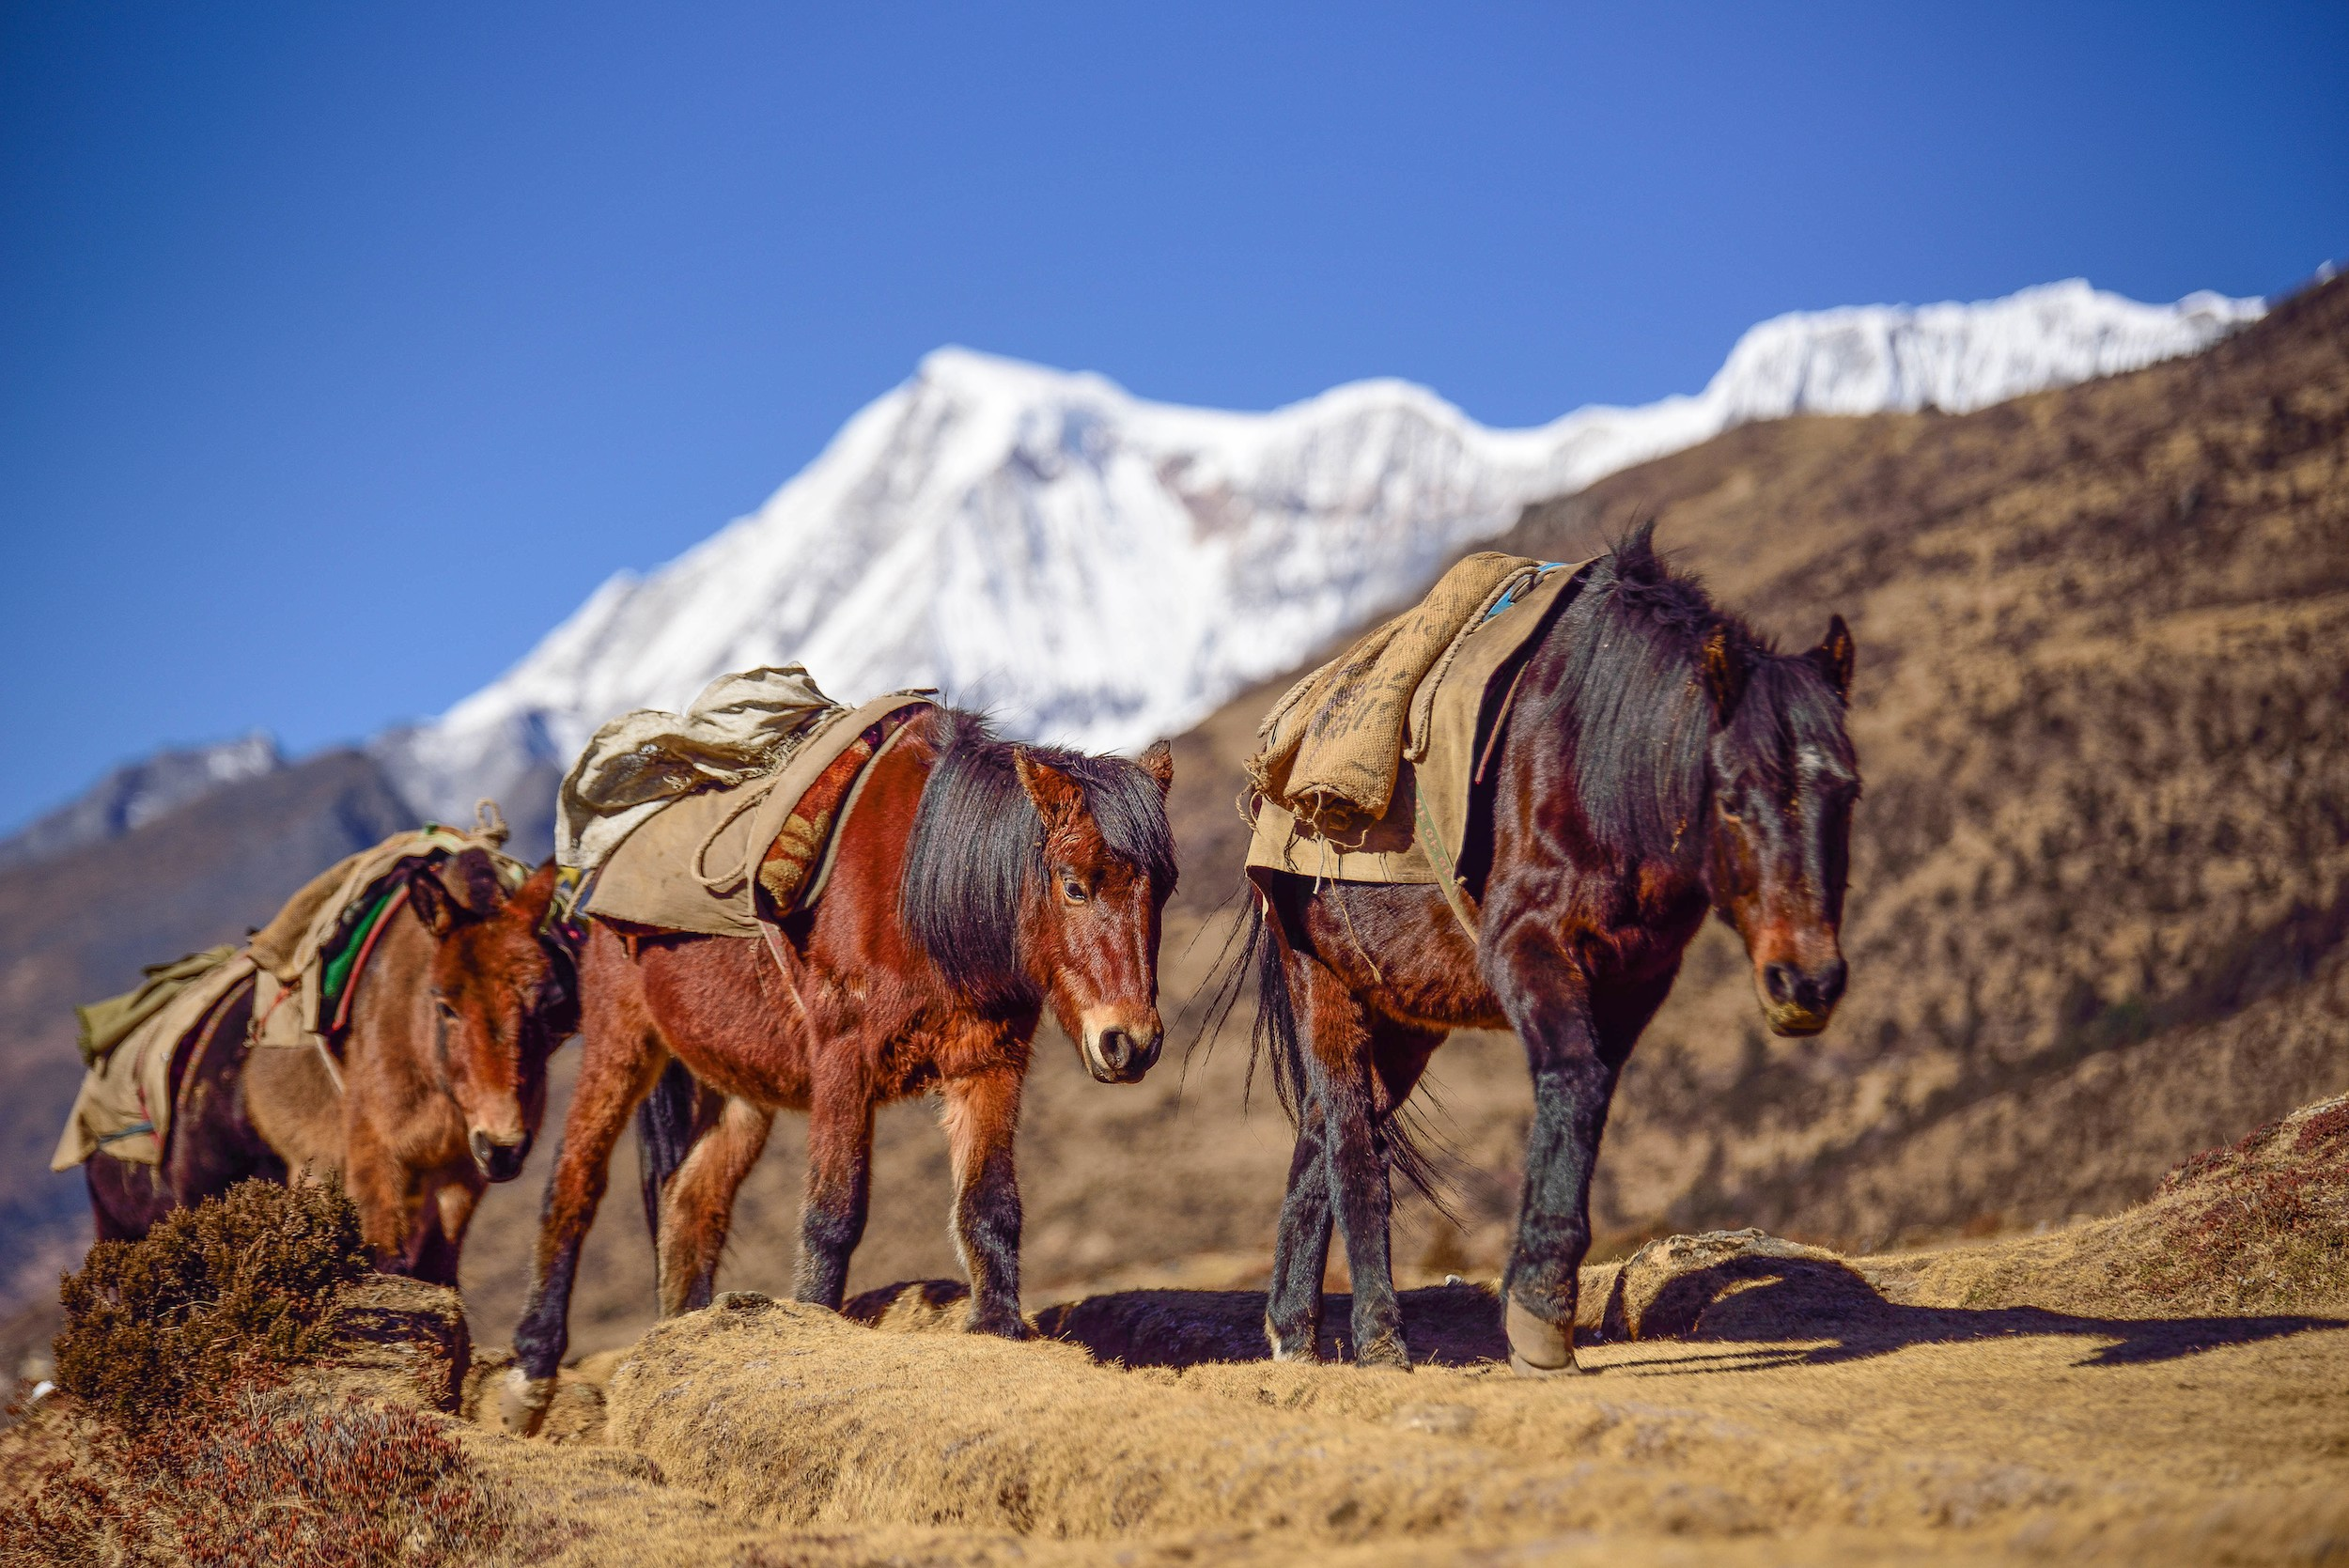 Three burlap-saddled brown ponies summiting a ridge with snow capped mountains in the distance, Bhutan